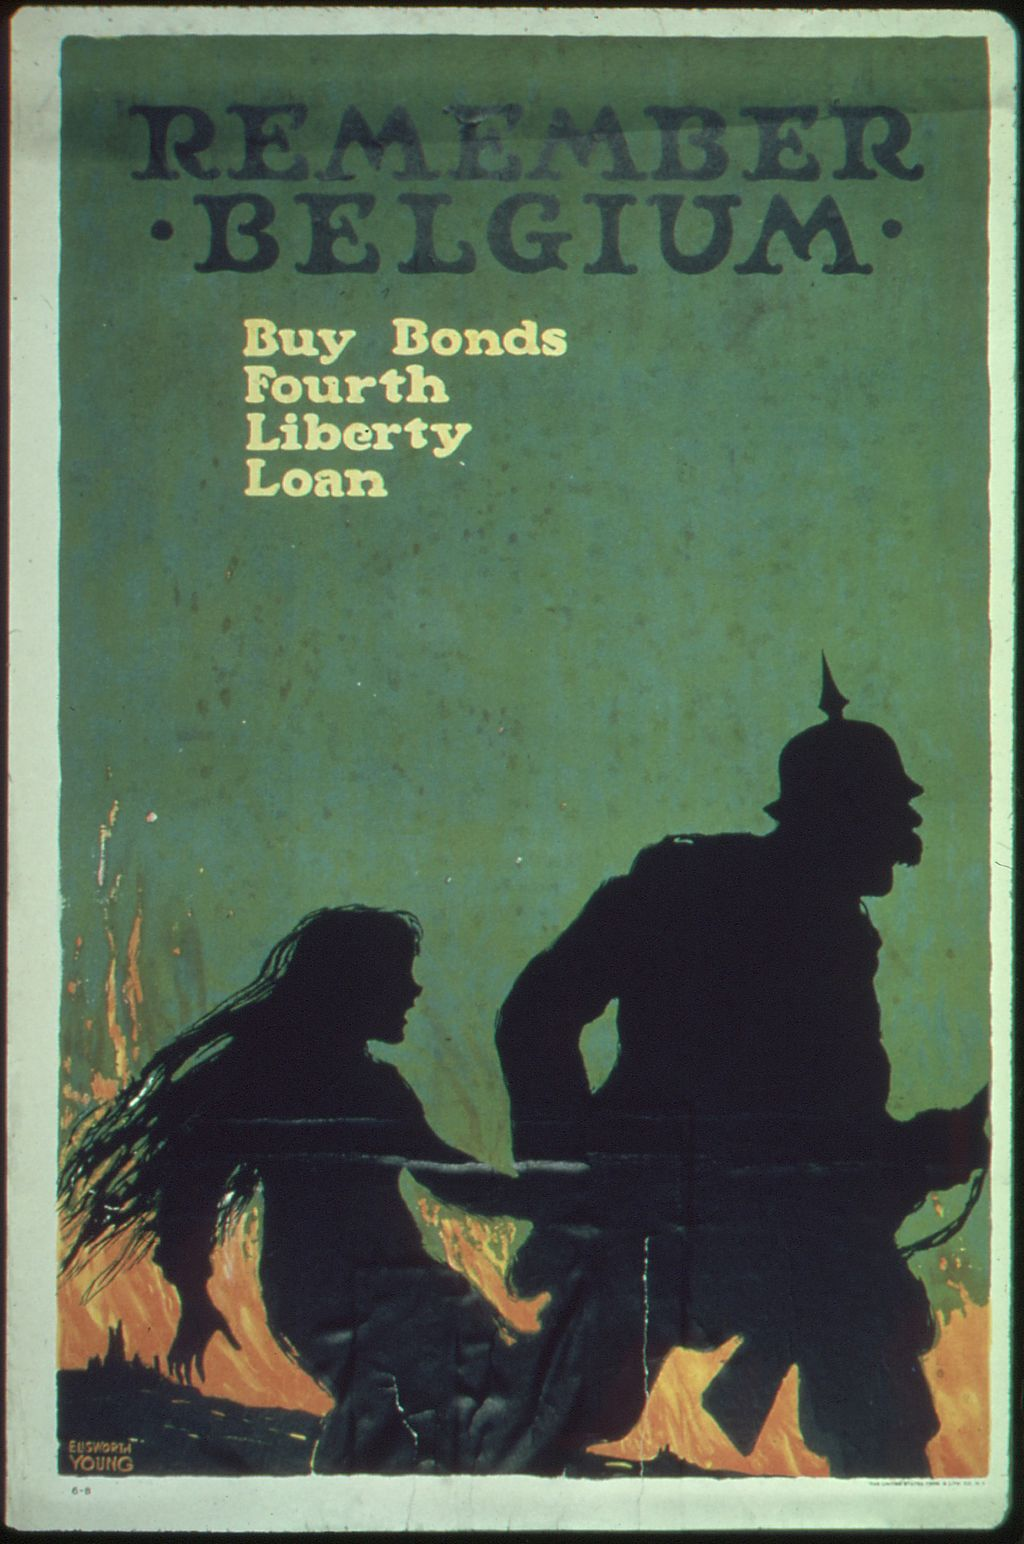 Another reference to Belgium to encourage people to buy war bonds.